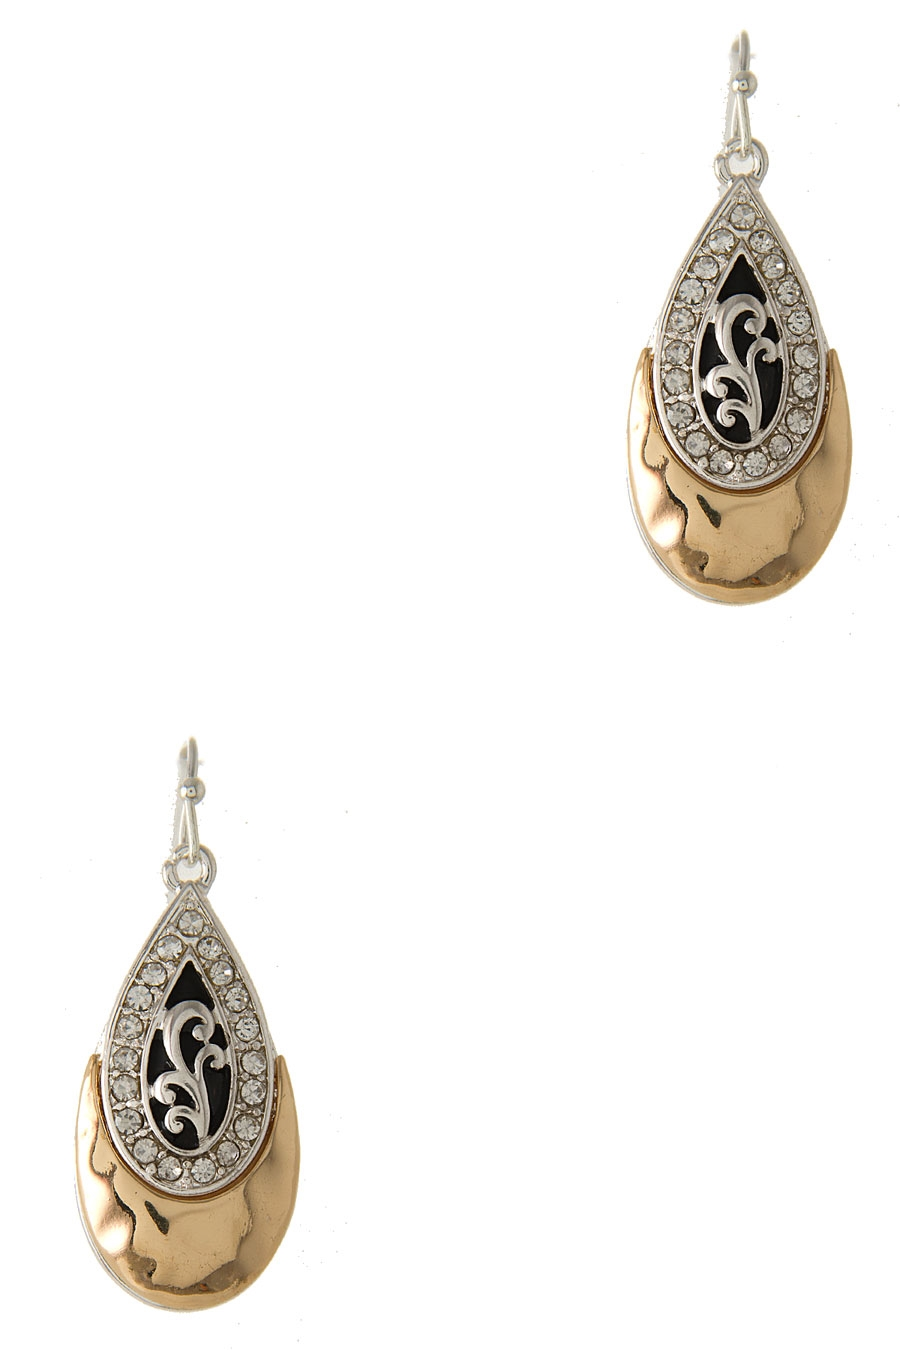 FILIGREE TEARDROP EARRING - orangeshine.com